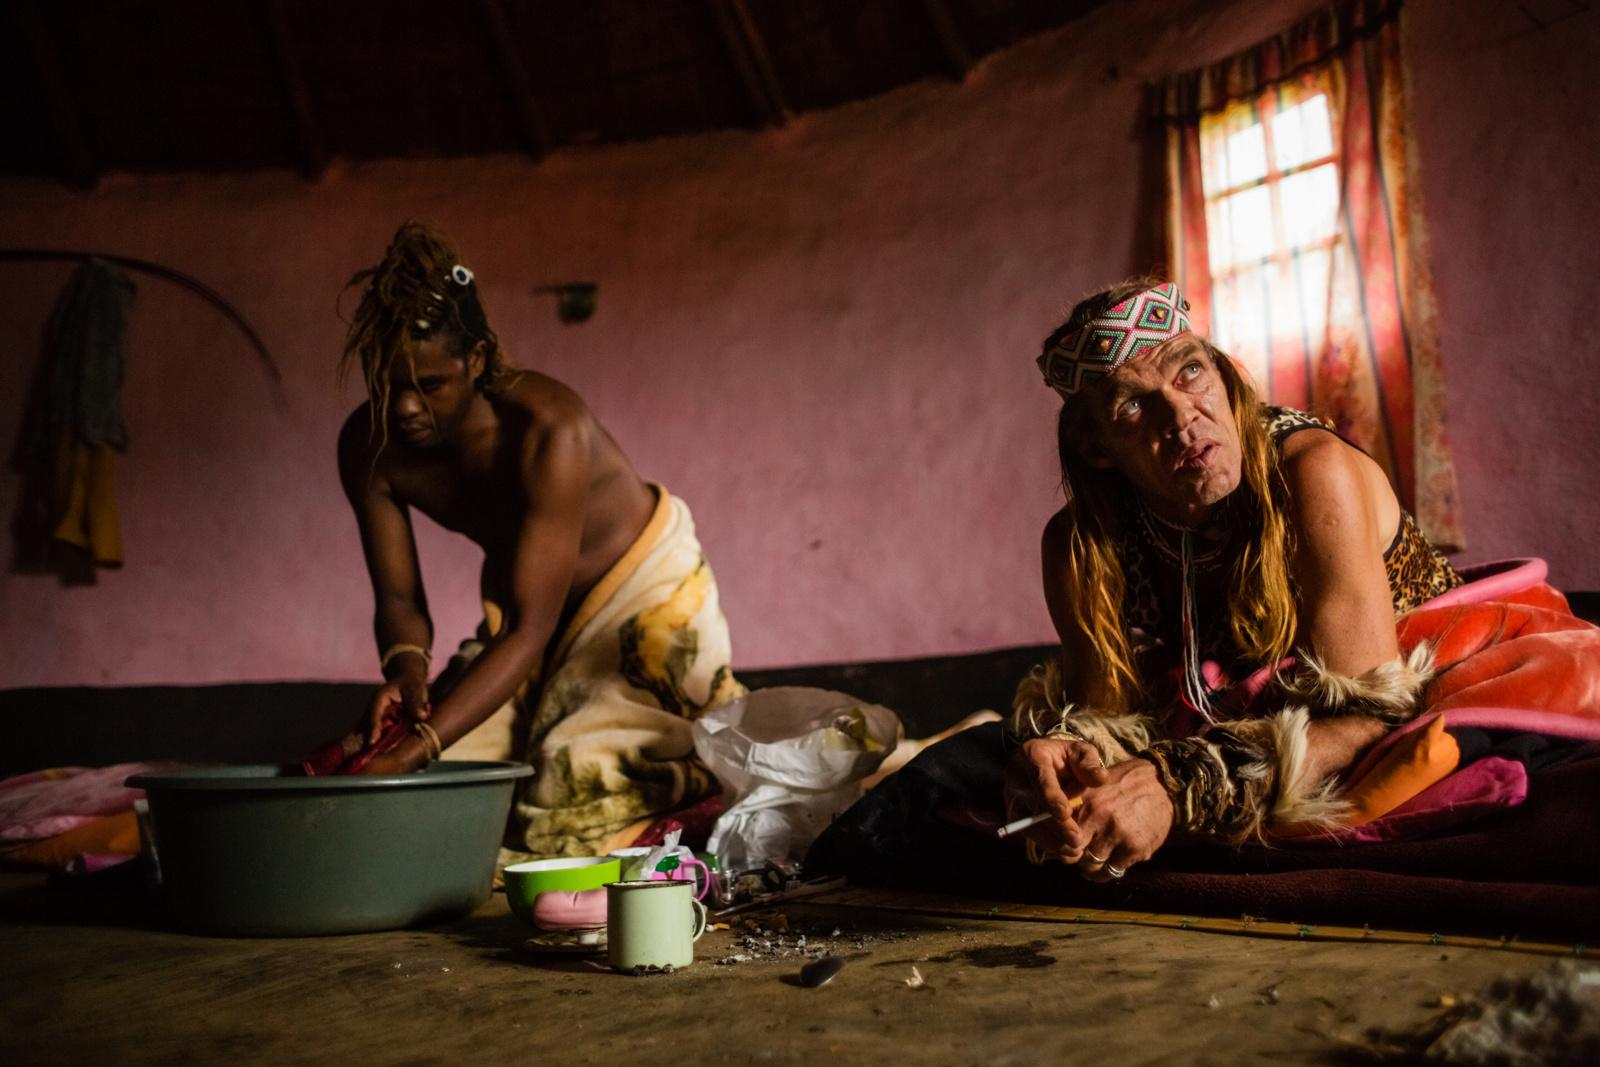 UMZIZWANGA, LUSIKISIKI DISTRICT, SOUTH AFRICA - NOVEMBER 13, 2014: Sangoma Chris Ntombemhlophe Reid (R ), 50, smokes a cigarette on his bed at his spiritual family's homestead while sangoma Ntombethongo (L), 37, washes himself on November 13, 2014 in Umzizwanga, Lusikisiki District, South Africa. It is the first morning of a month long stay in the rural areas of the transkei during that various traditional ceremonies will be performed. The round hut, used as a communal sleeping space, will then transform into the ceremonial area.